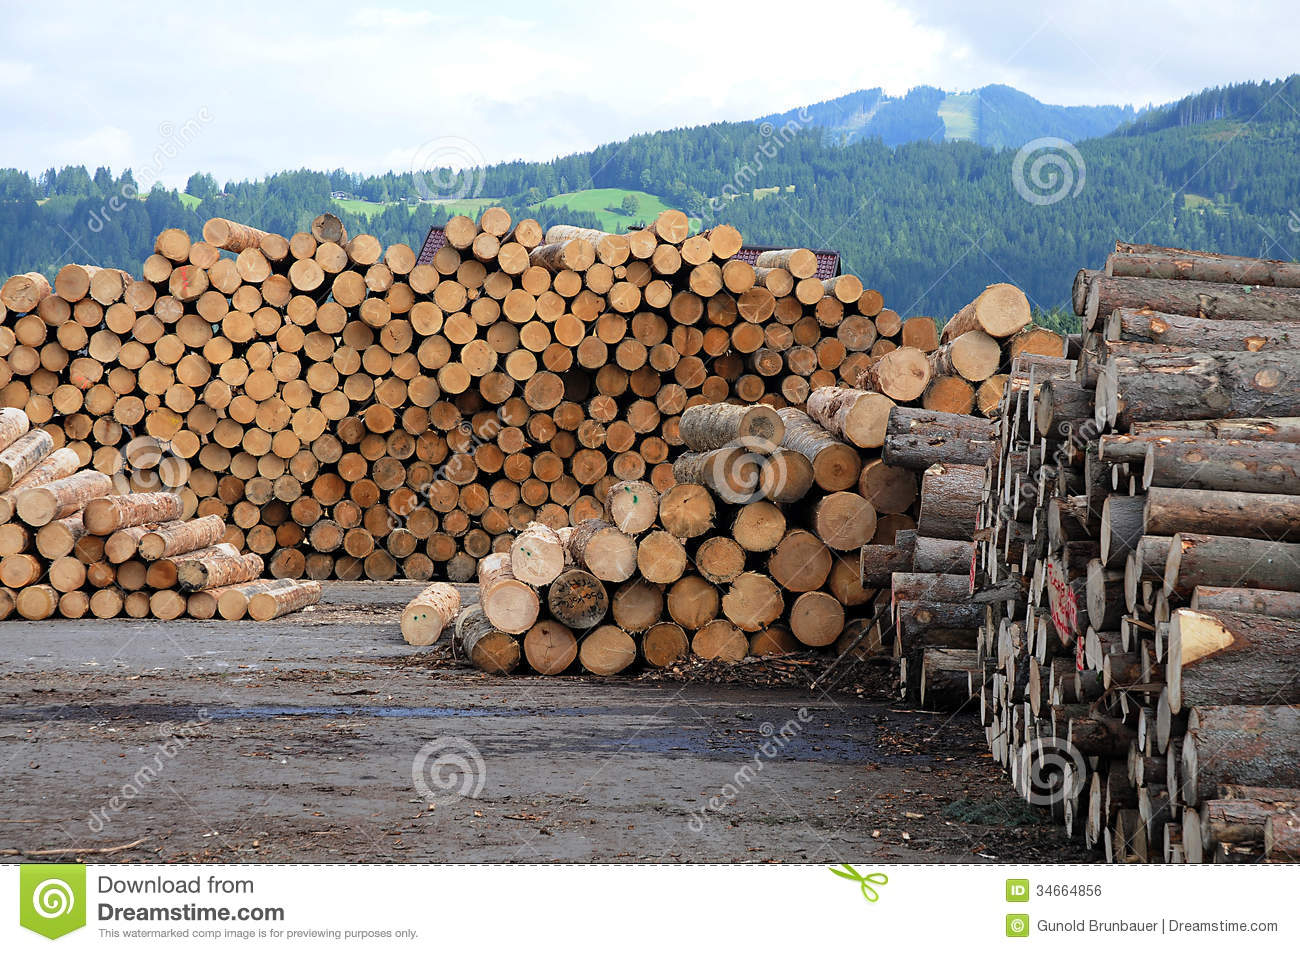 Pile Of Cut Lumber Wood In Front Of The Mountains In Austria